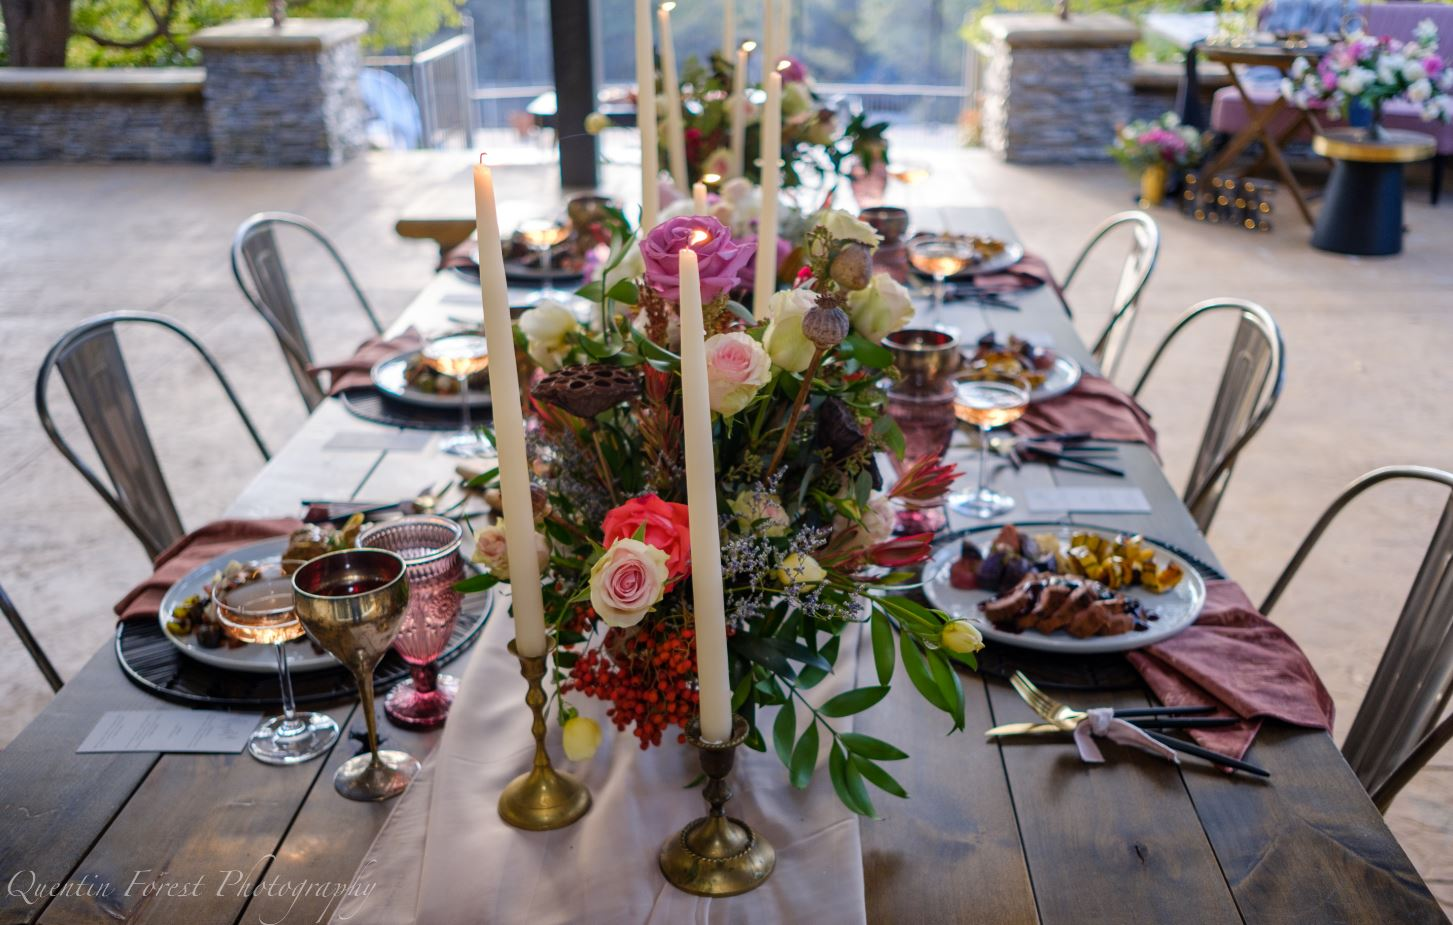 Table set for six with beautiful linens and lit taper candles